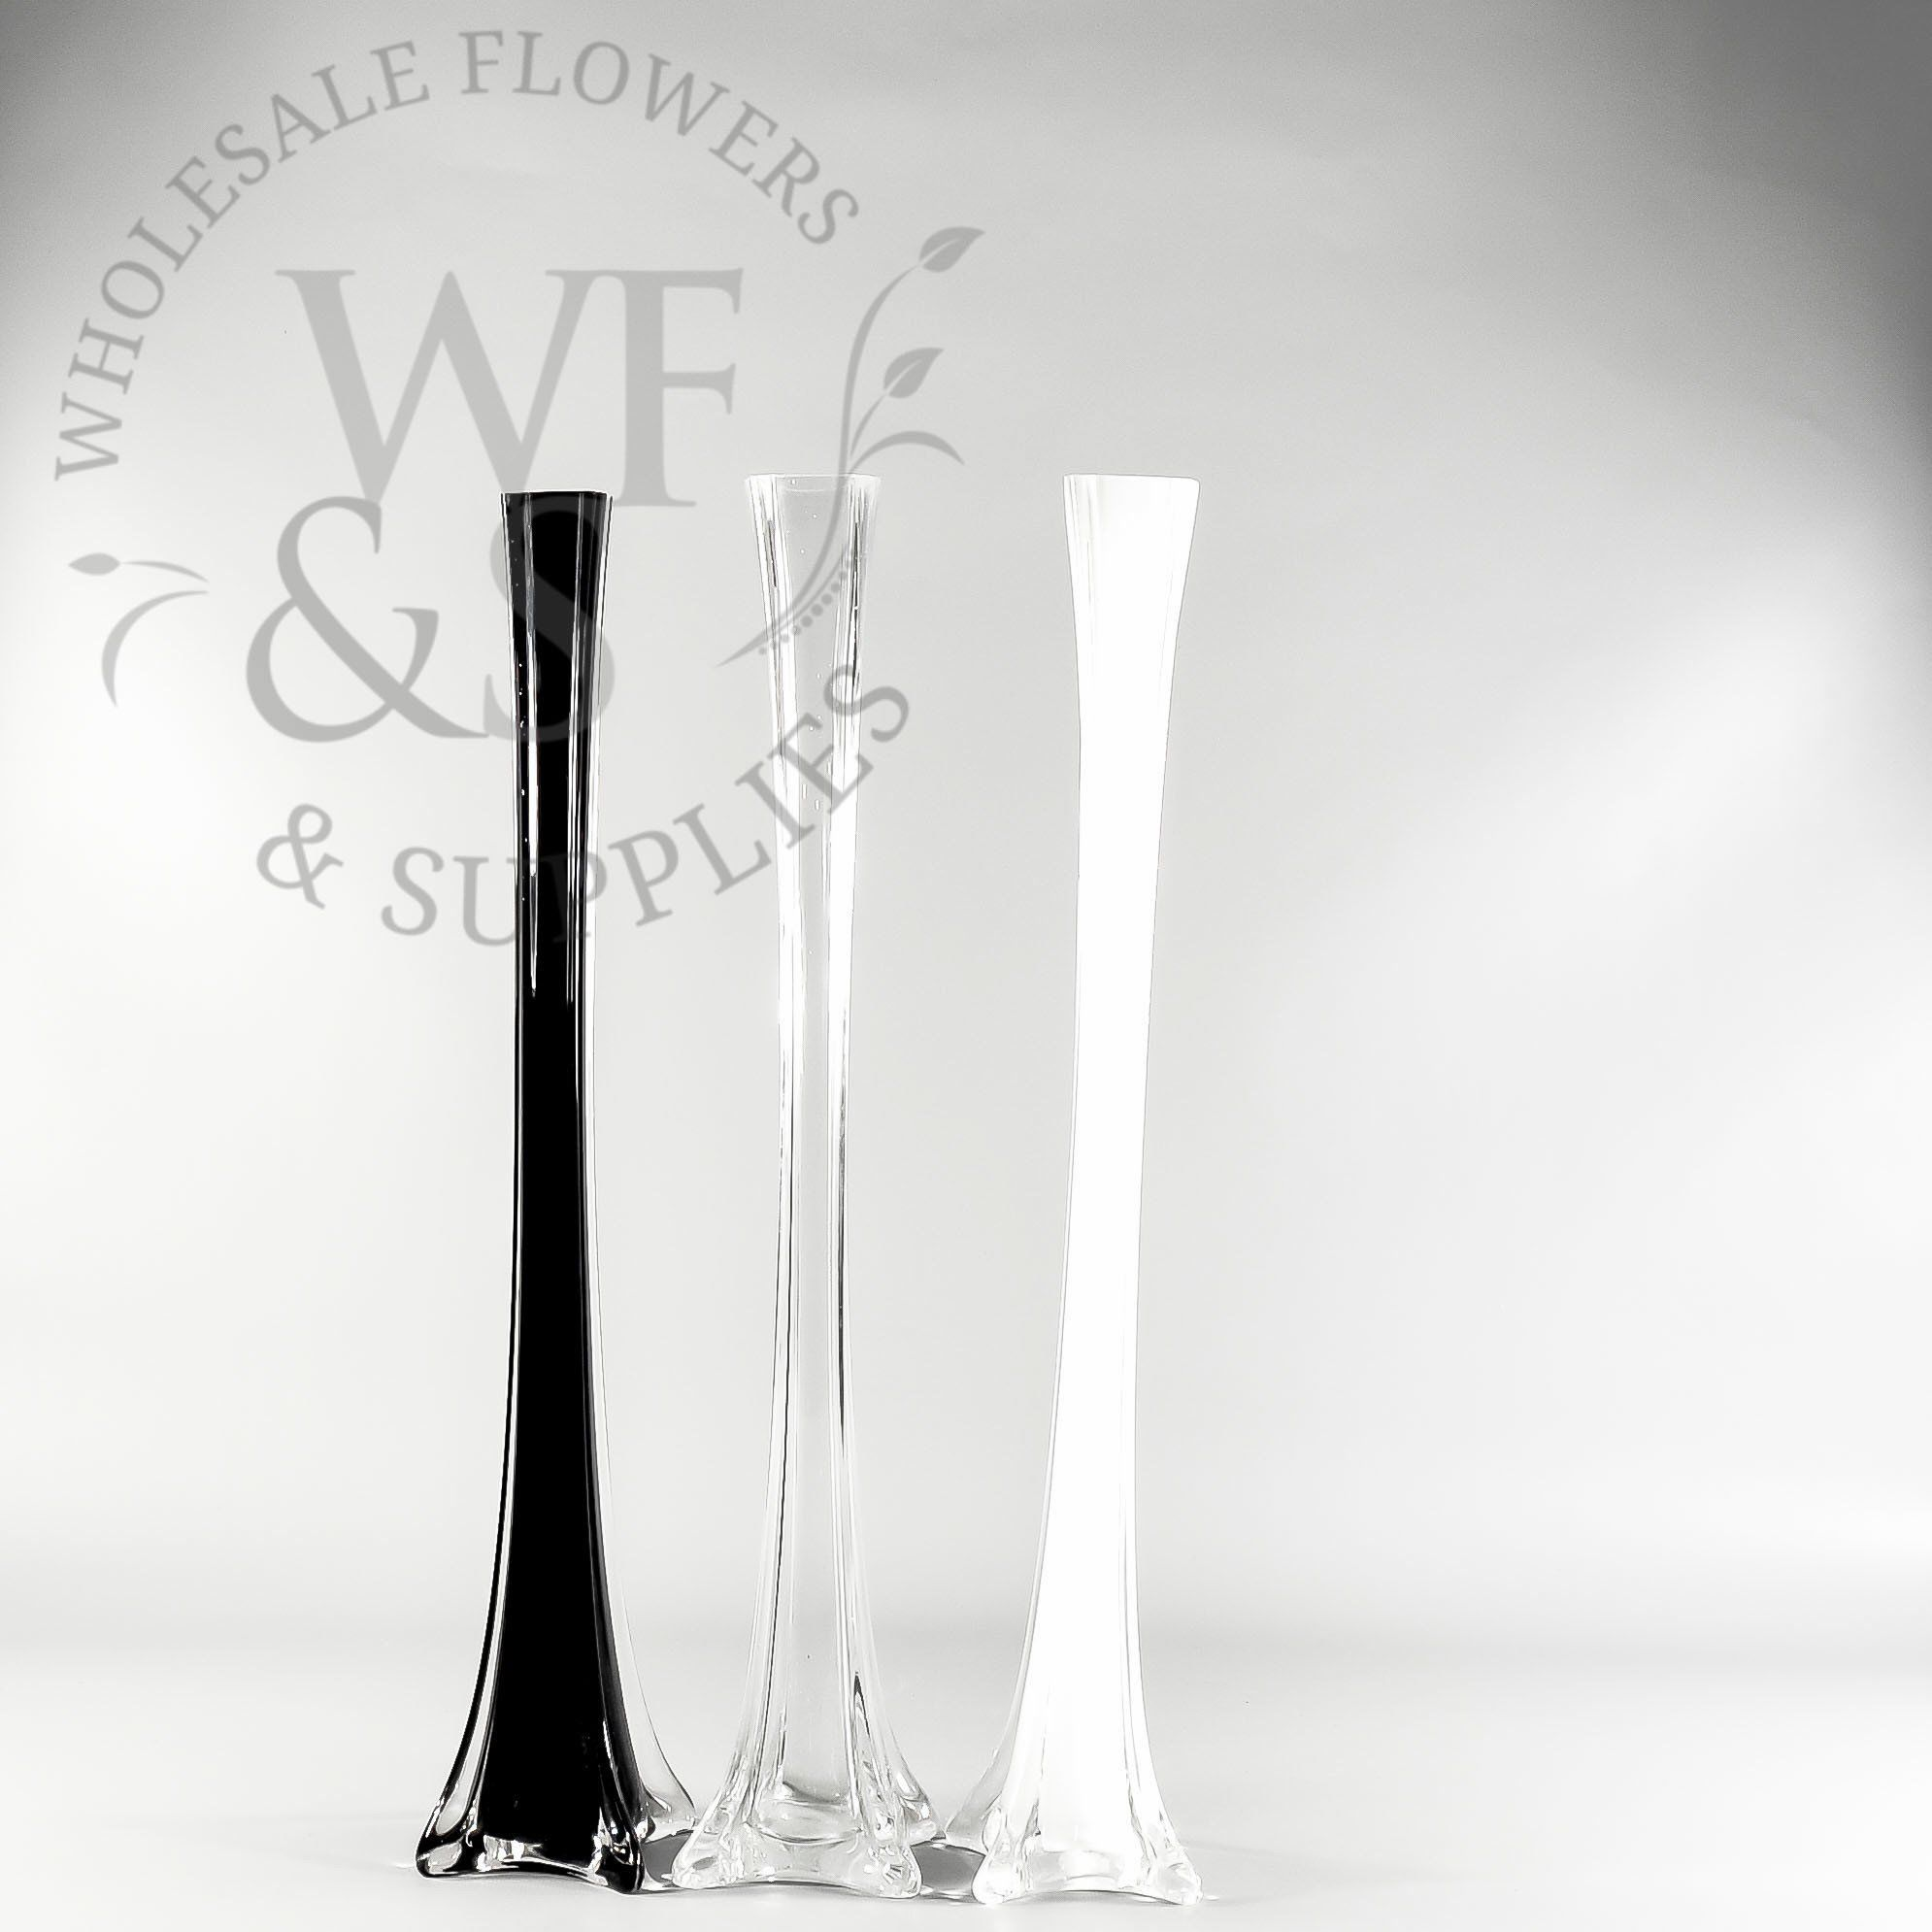 Eiffel Tower Glass Vase 20in | Eiffel tower vases, Tower and ...